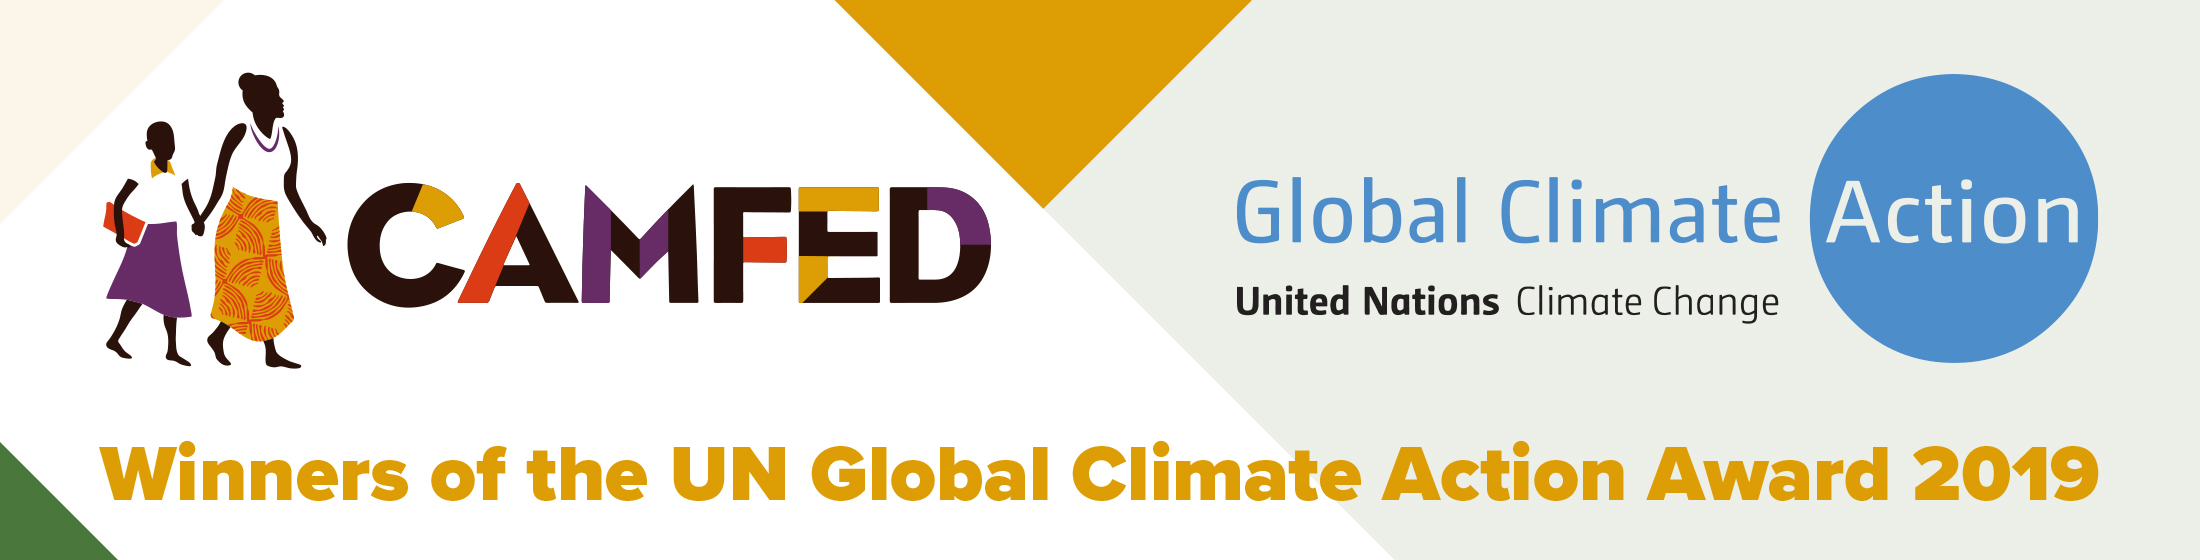 Winners of the UN Global Climate Action Award 2019